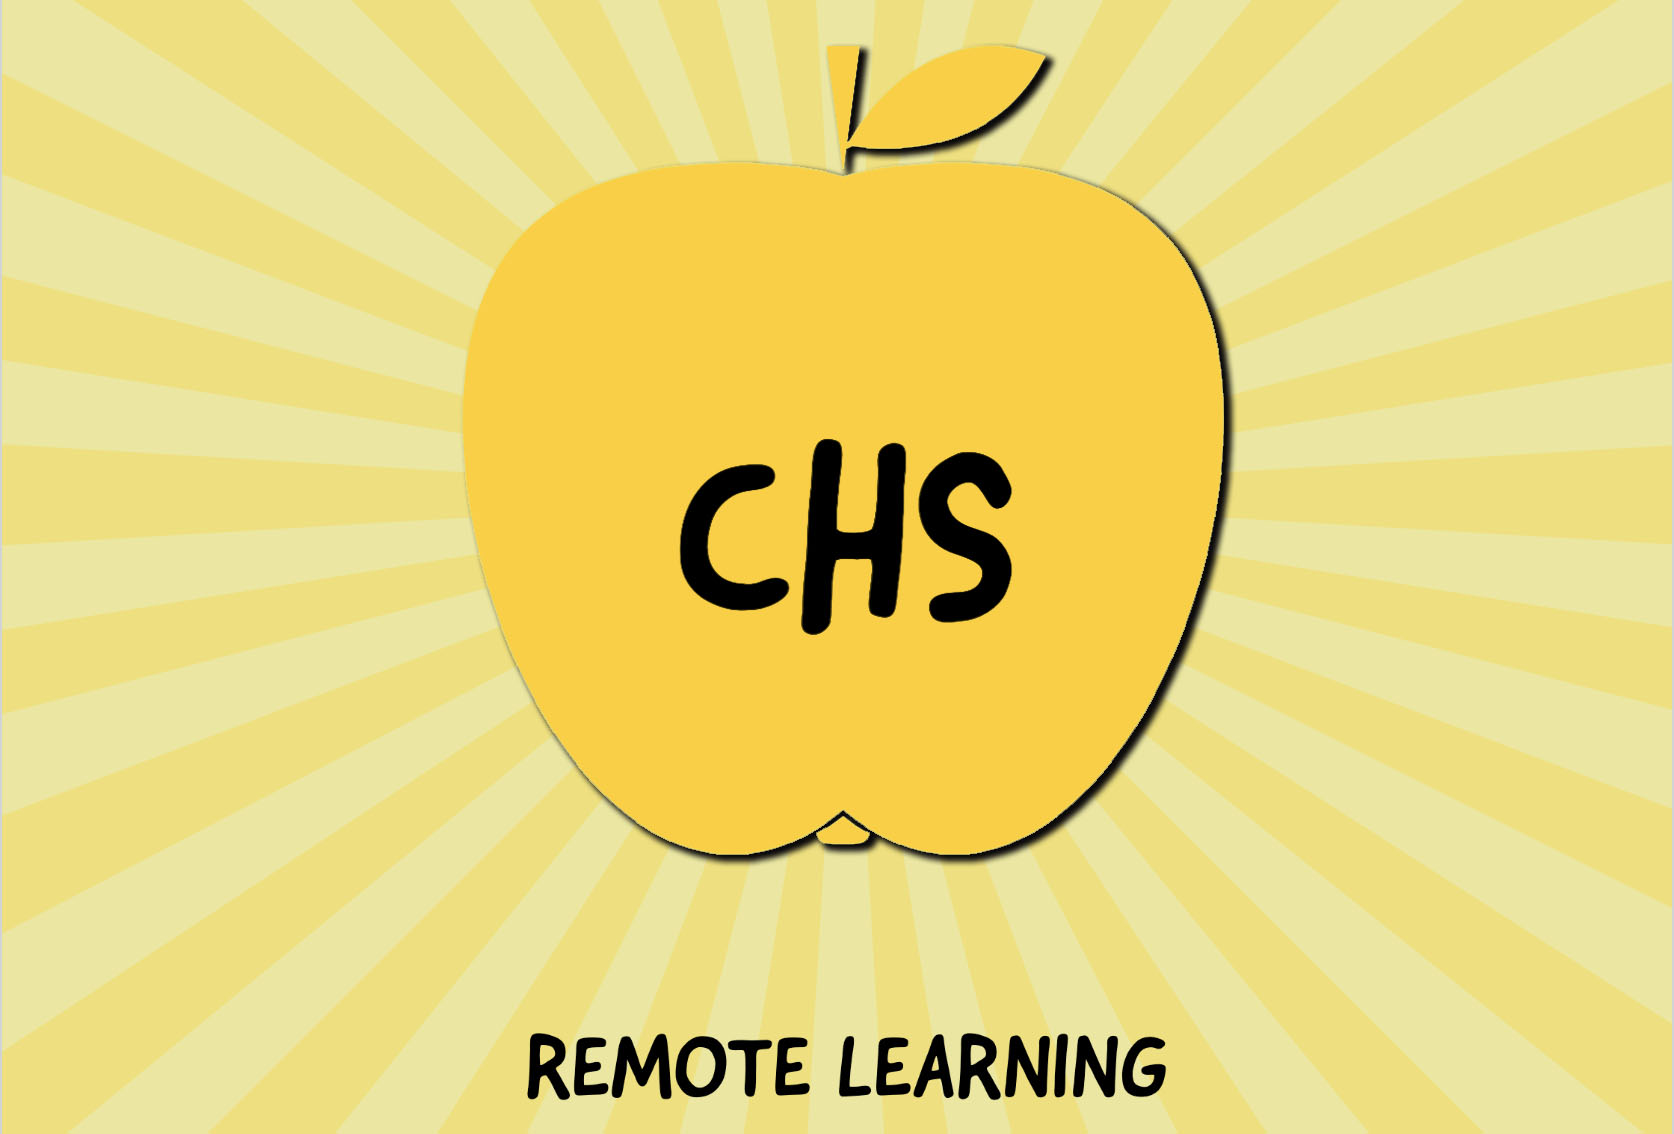 CHS Remote Learning